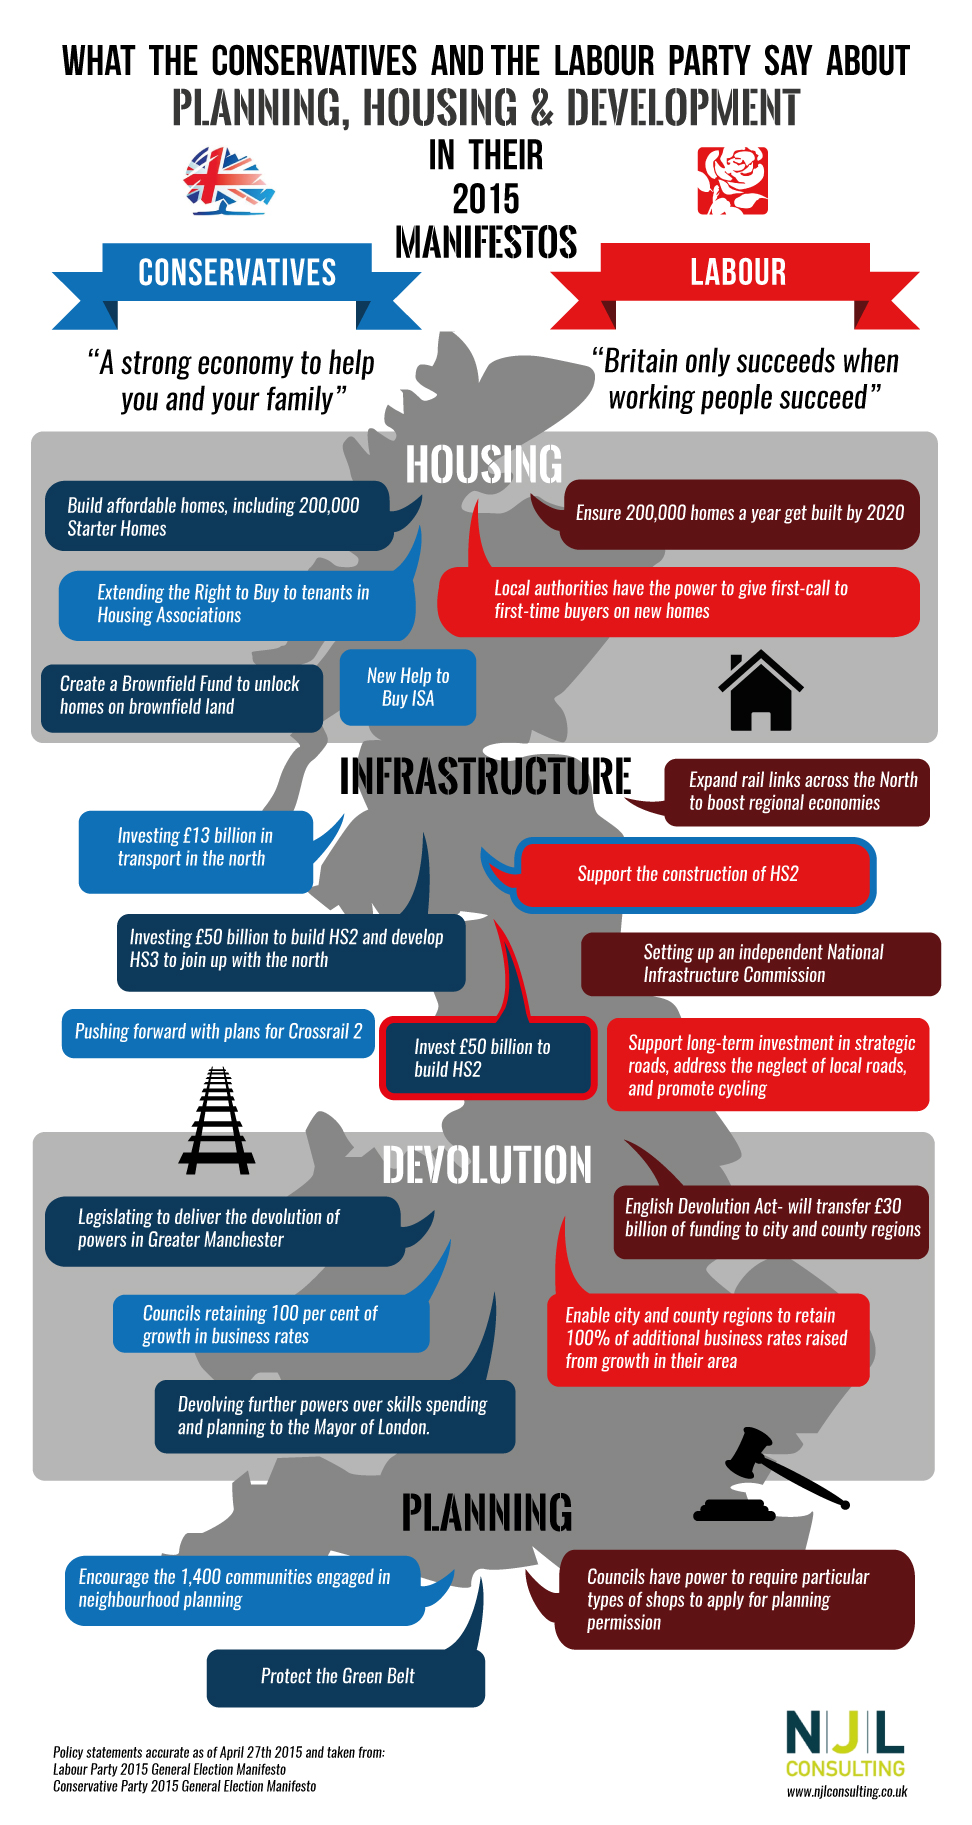 What the Conservatives and Labour say about planning, housing and infrastructure